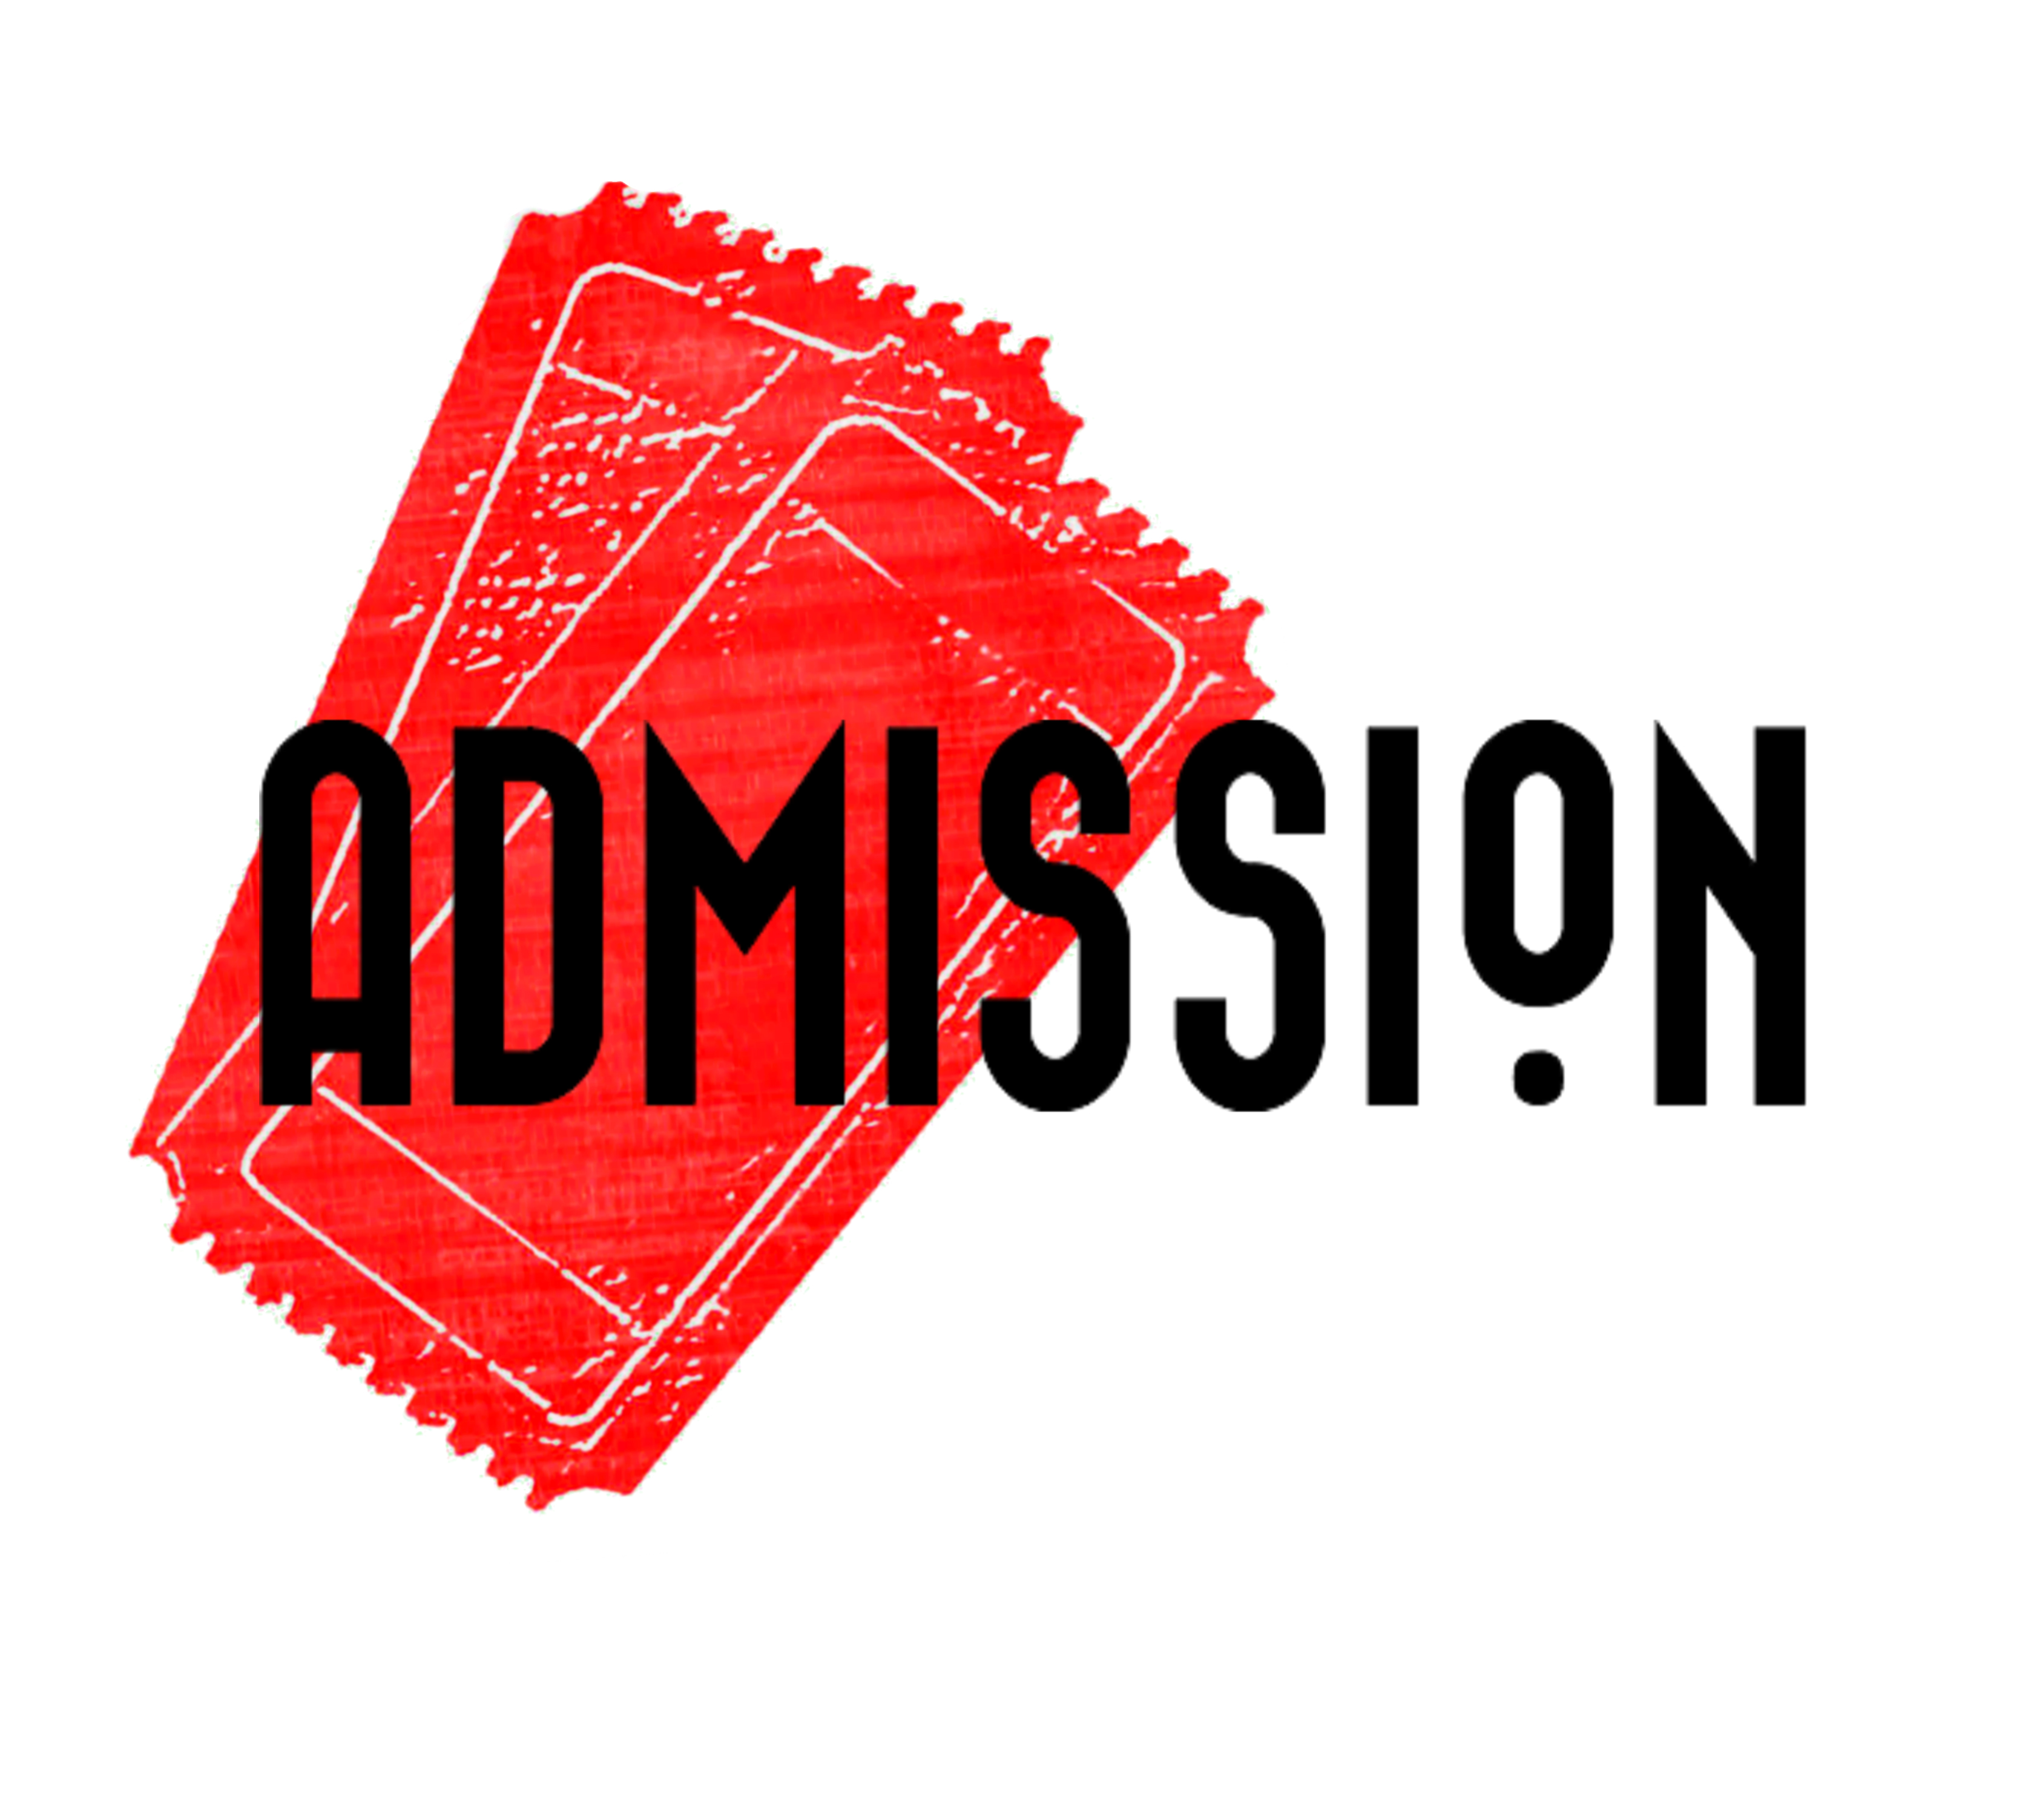 admission band logo #offbeatgraphics